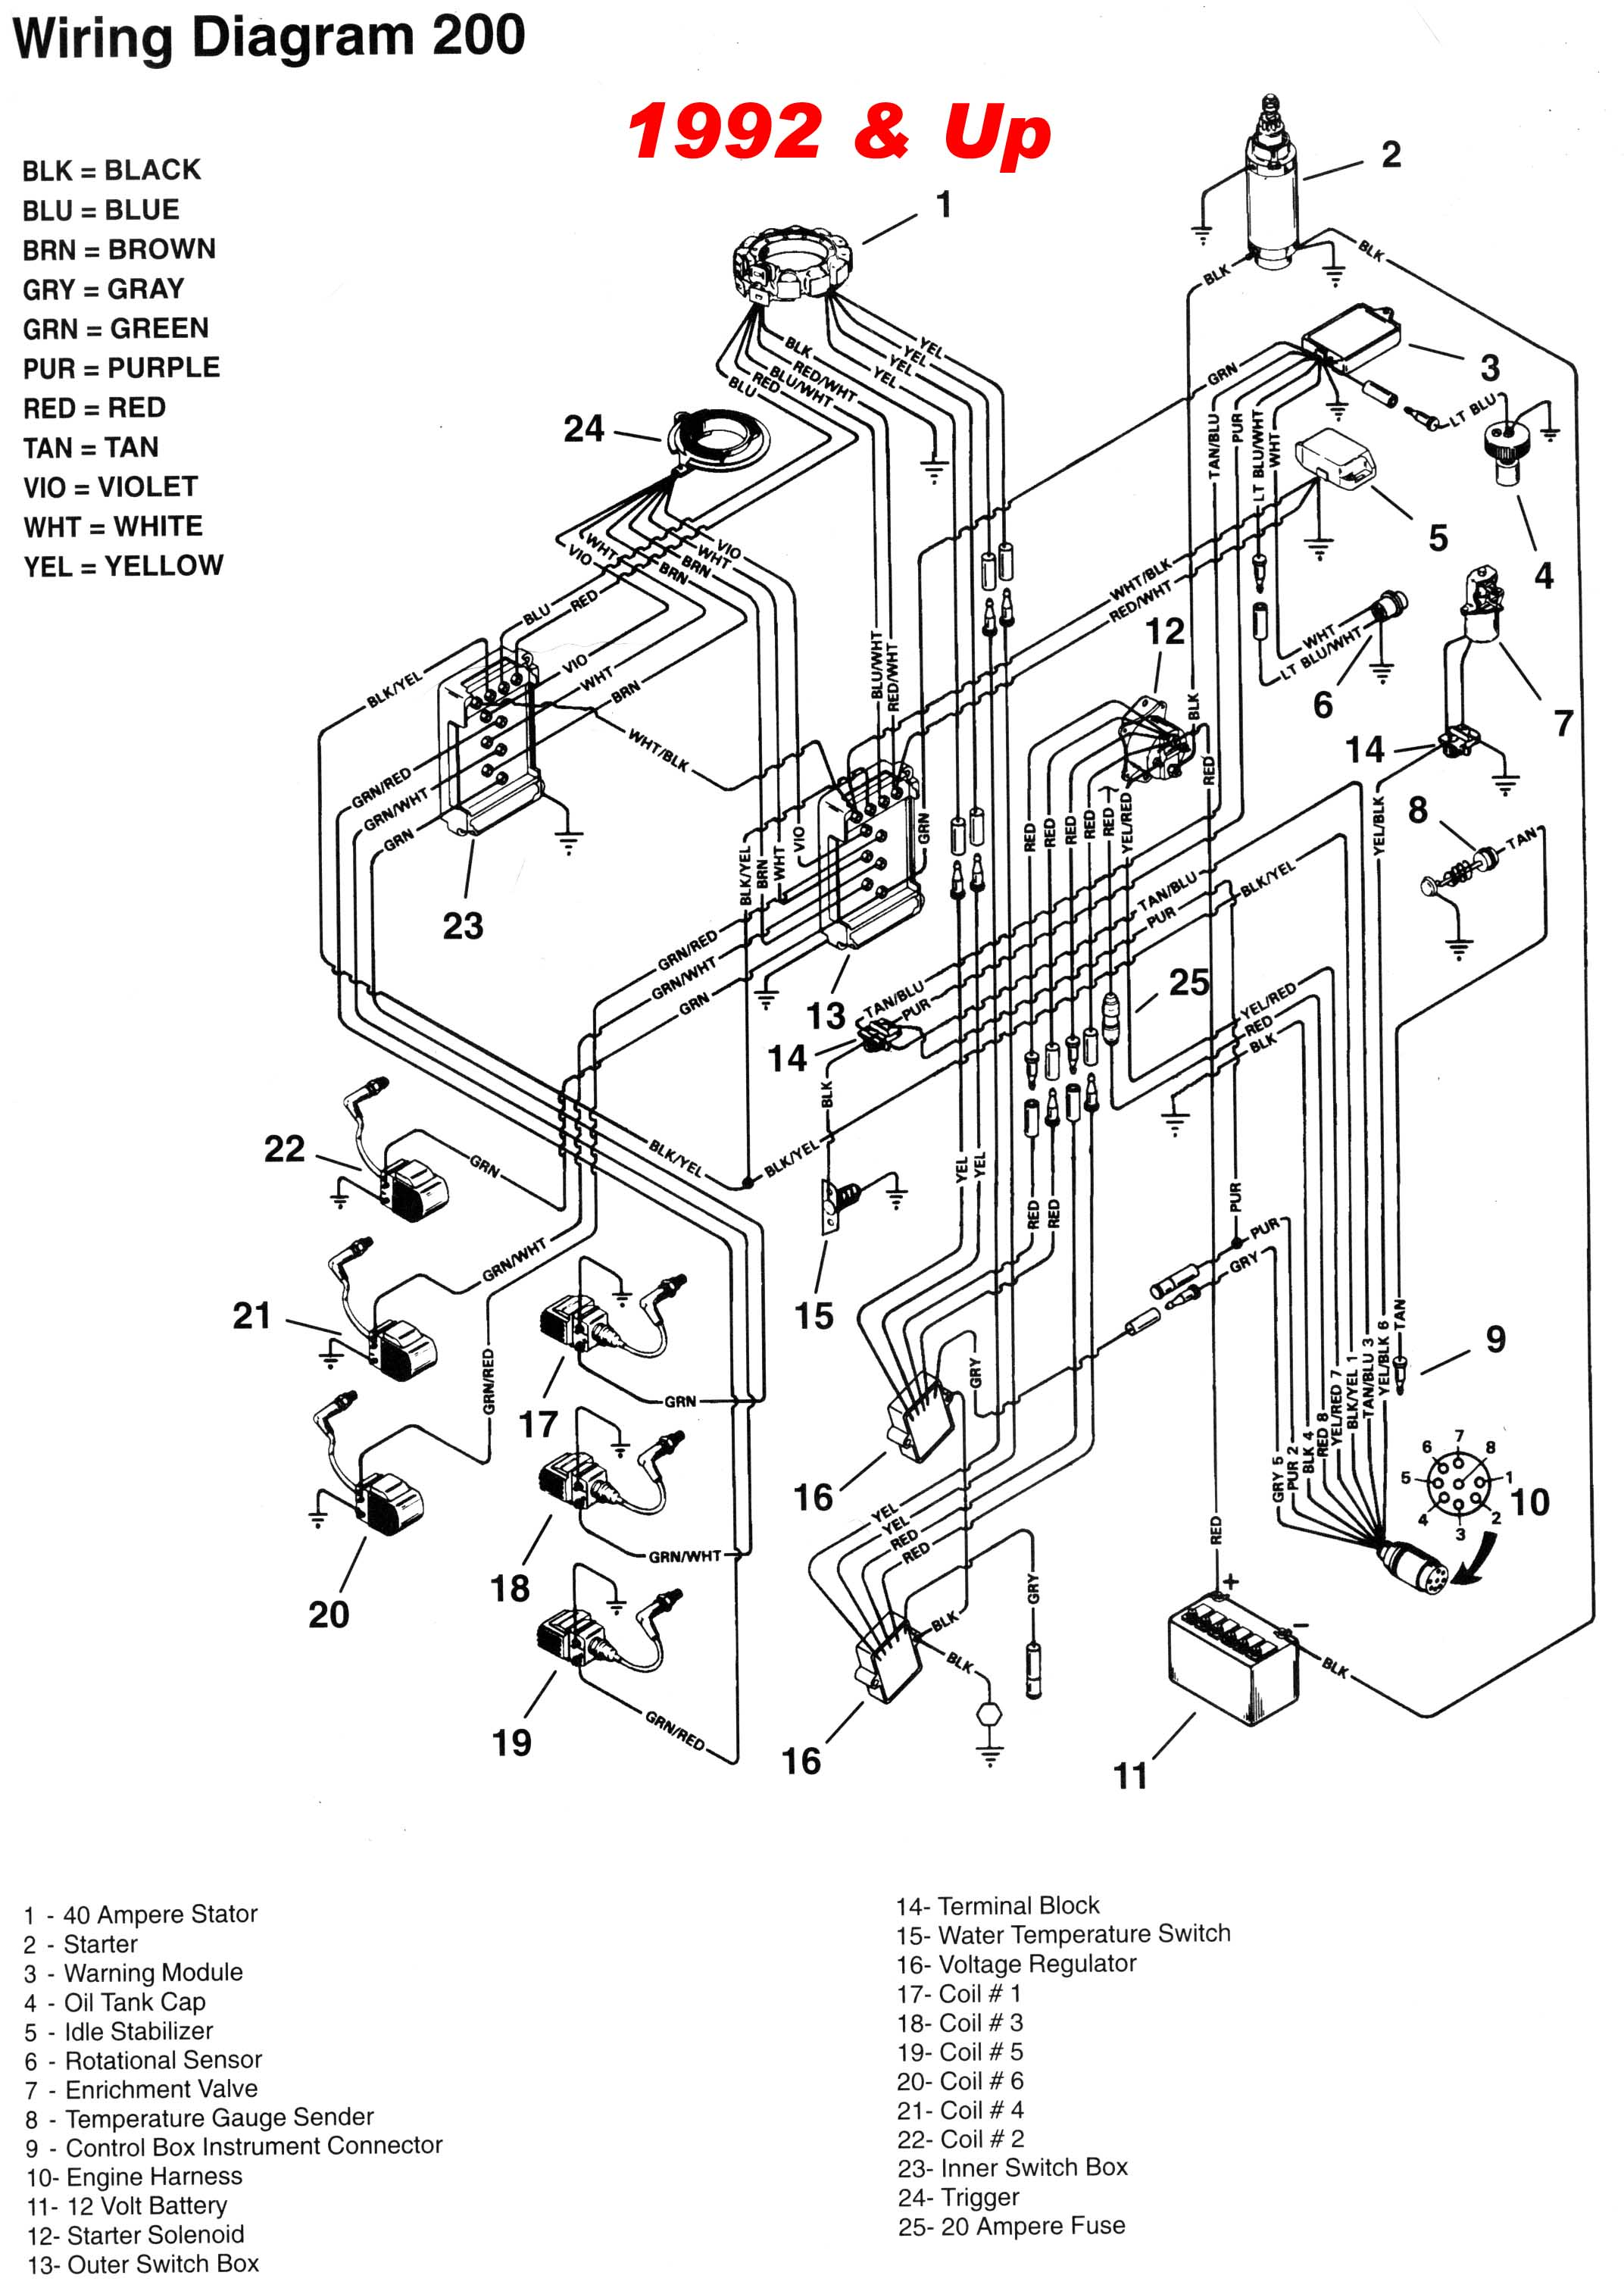 mercury_92up_200_wiring mercury outboard 2 5 and 3 0l v6 and gearcase faq mercury 14 pin wiring harness diagram at n-0.co